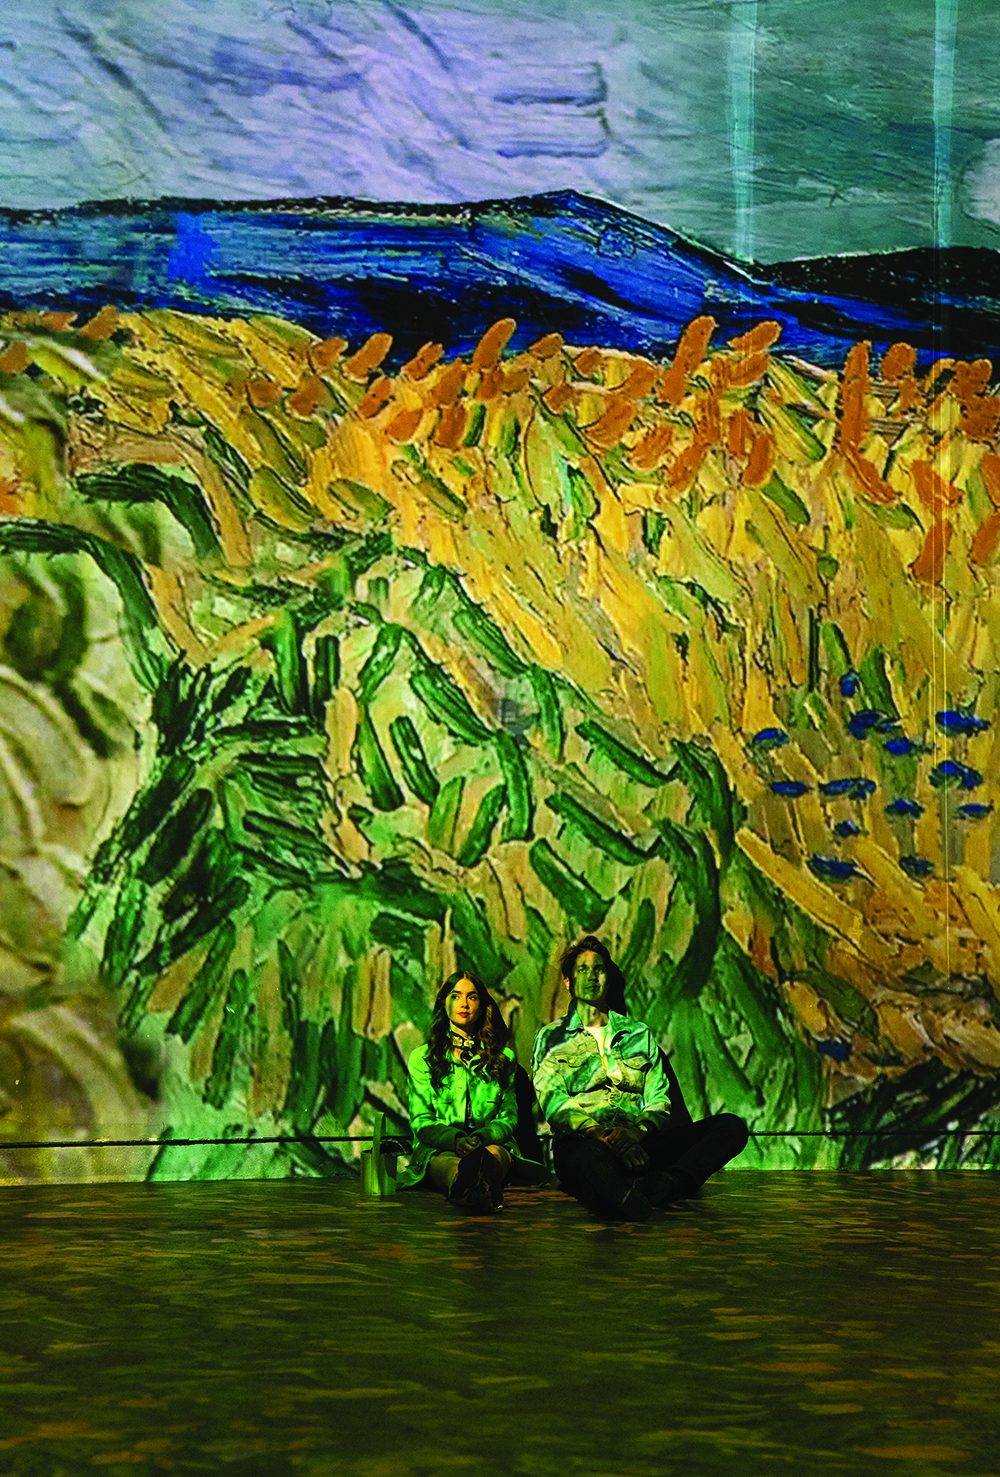 A digital projection of a Van Gogh painting covers a wall and two people leaning against it with thick brushstrokes of green and gold